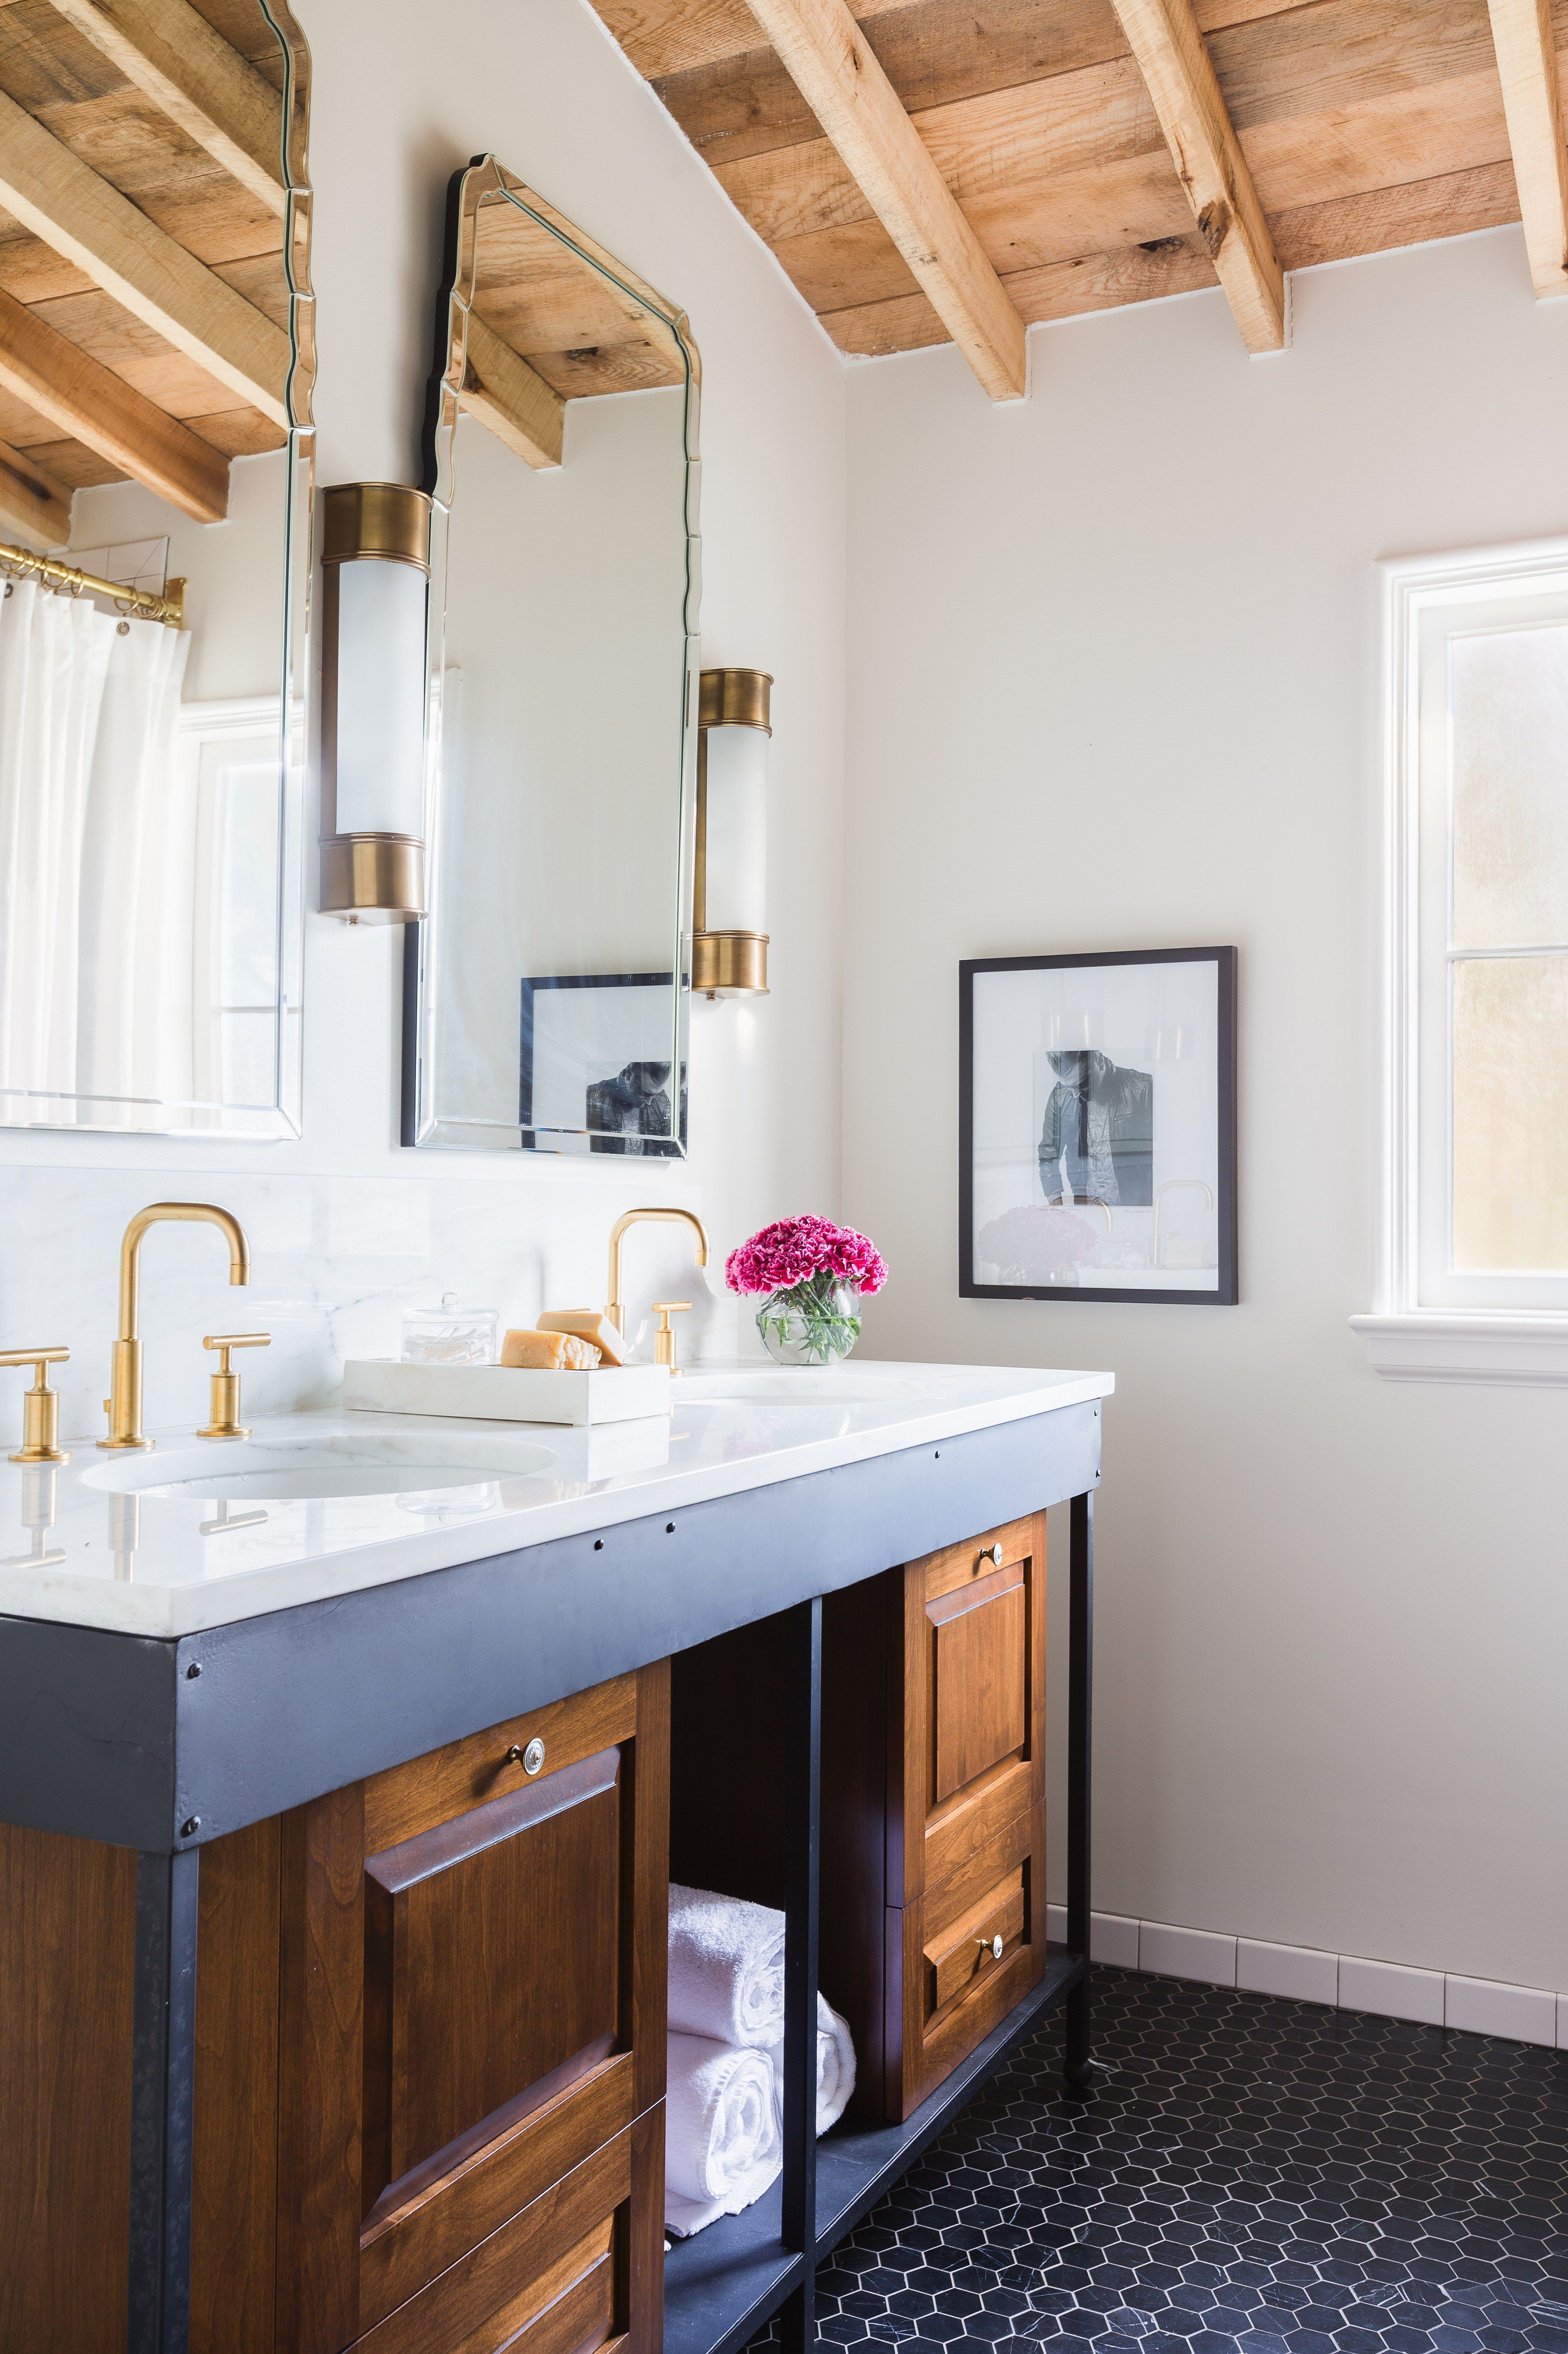 How to Give an Old-Fashioned Bath a Modern Look Photos | Architectural Digest